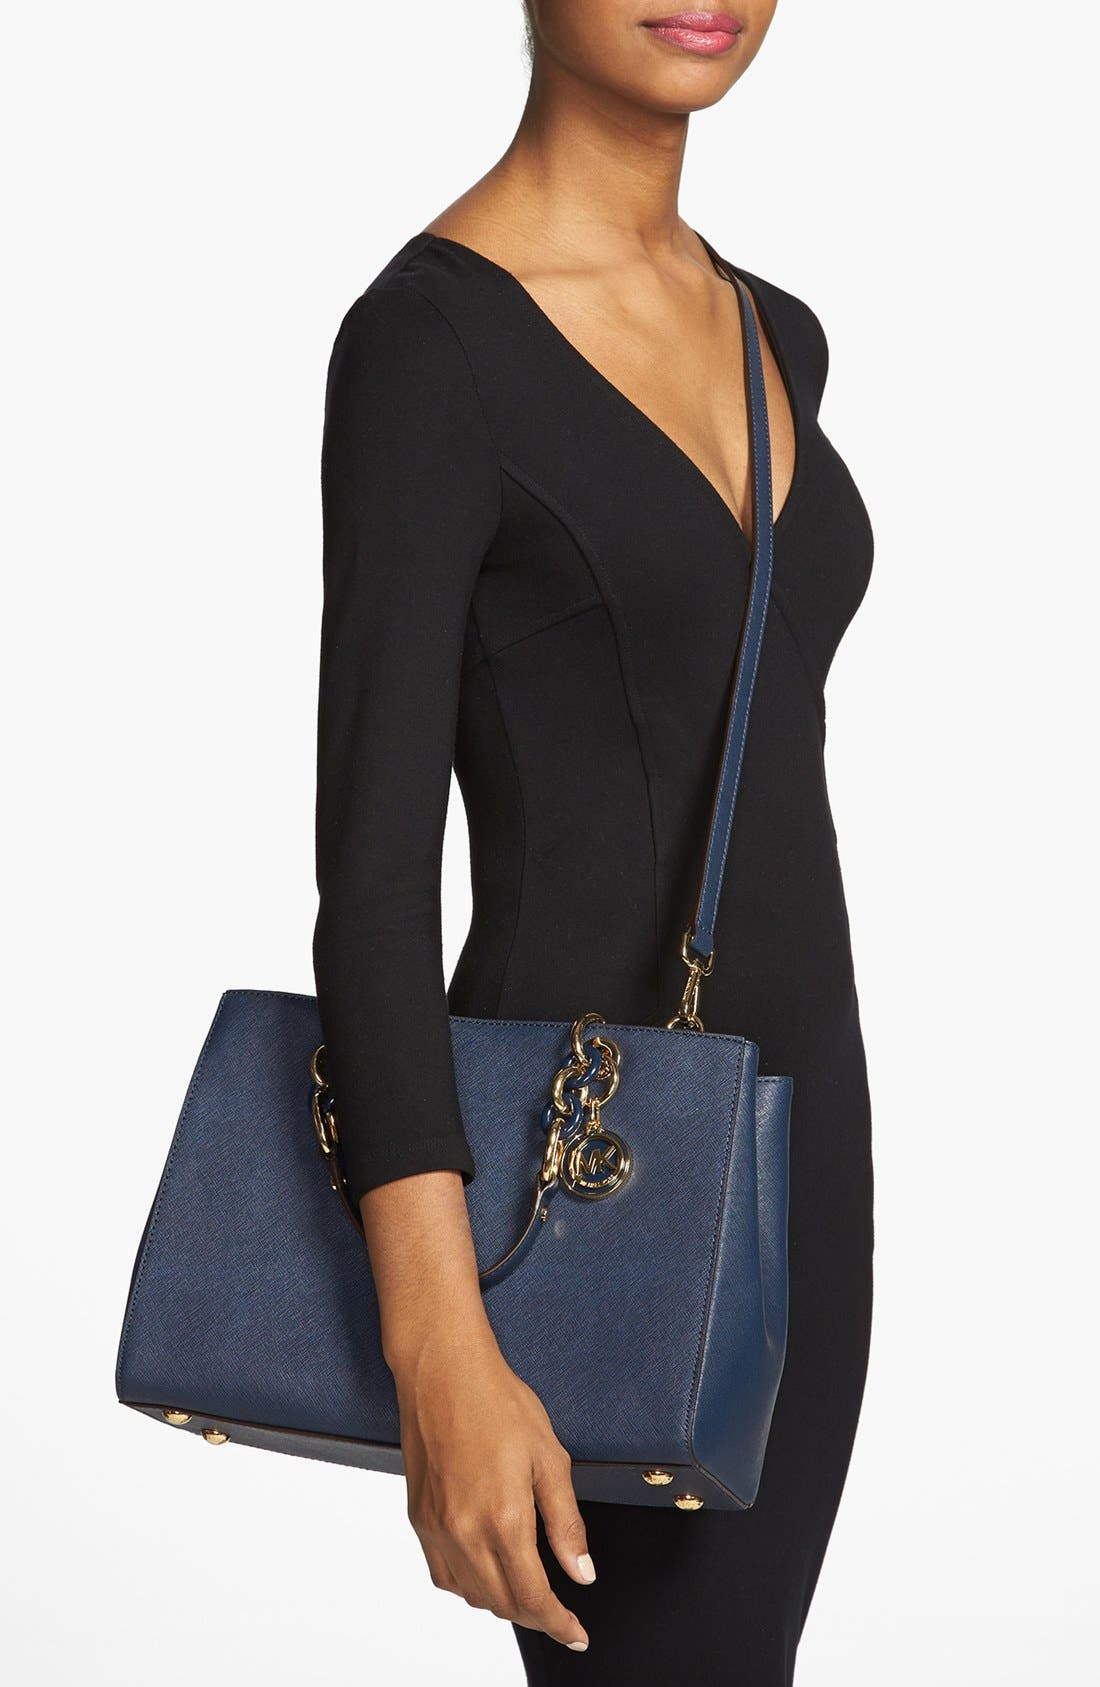 Alternate Image 2  - MICHAEL Michael Kors 'Cynthia' Saffiano Leather Satchel